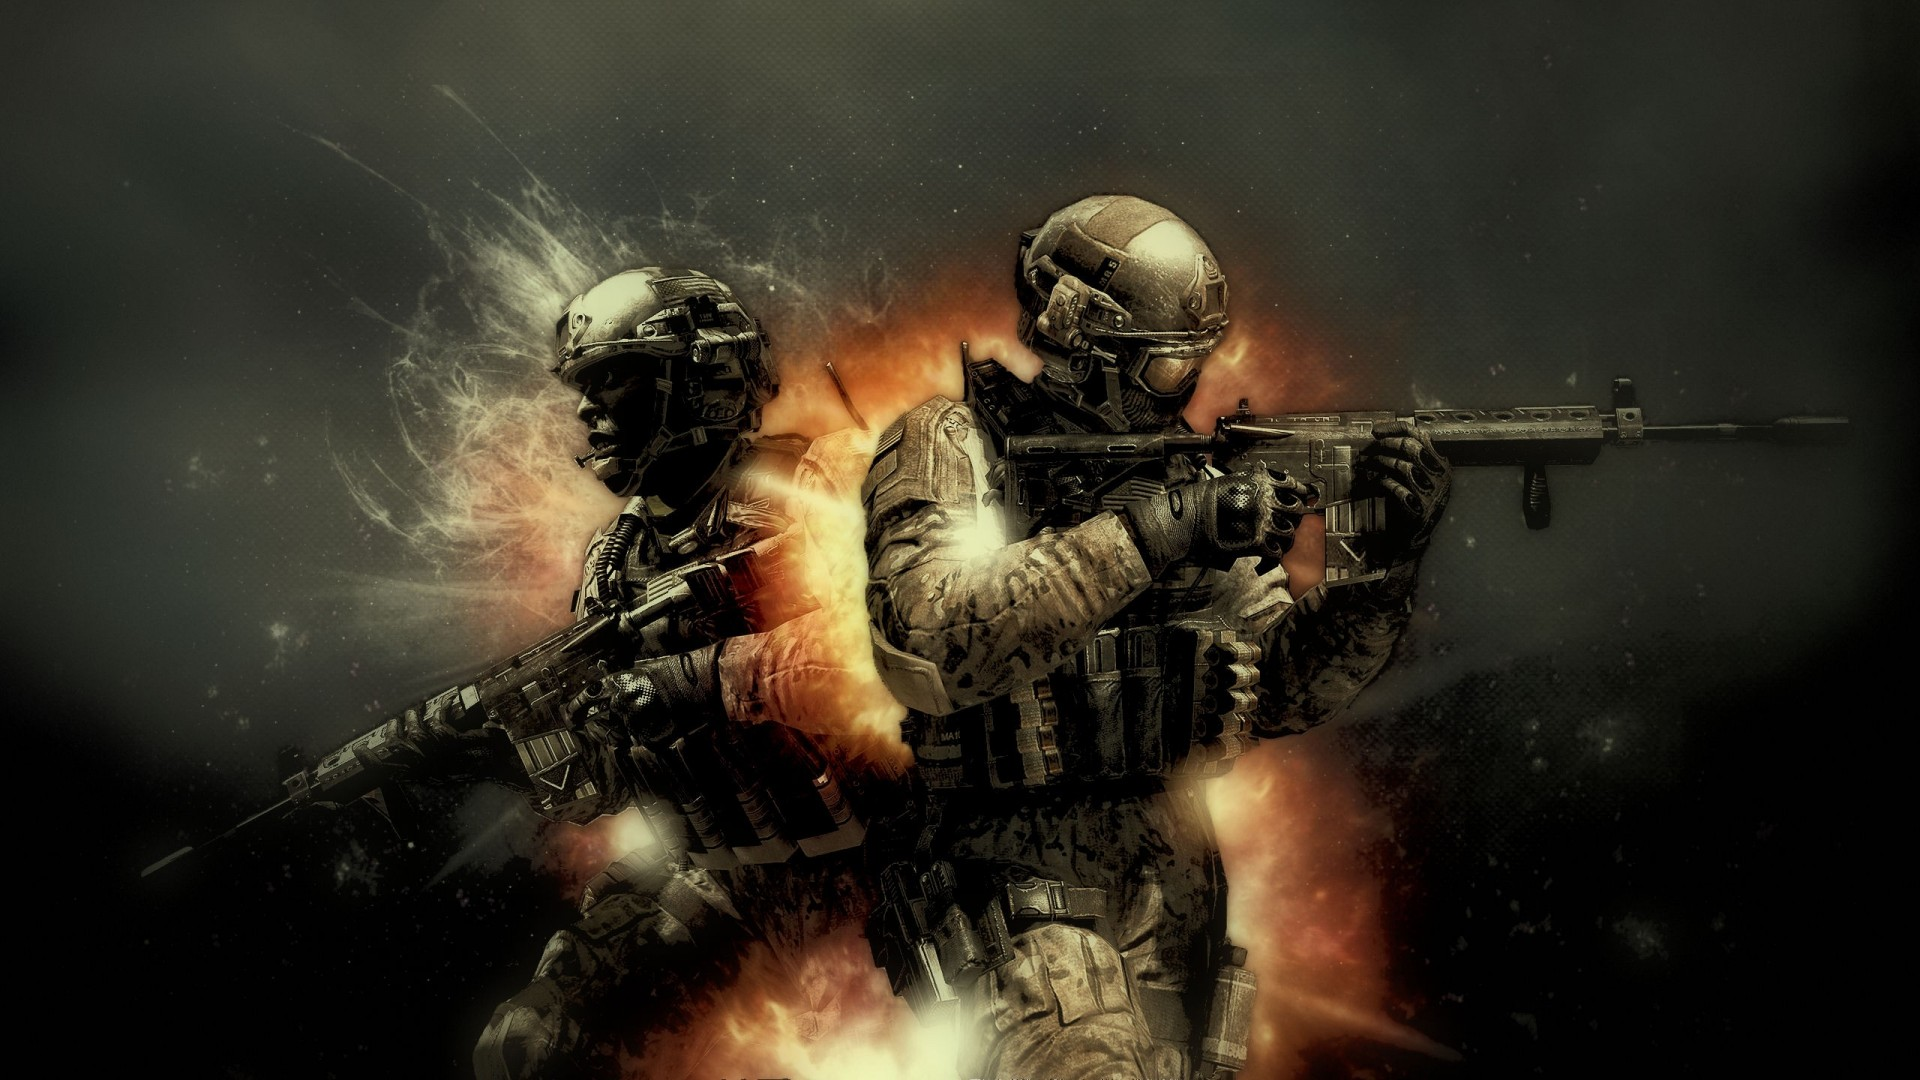 Call of duty wallpapers best wallpapers for Cool modern wallpapers